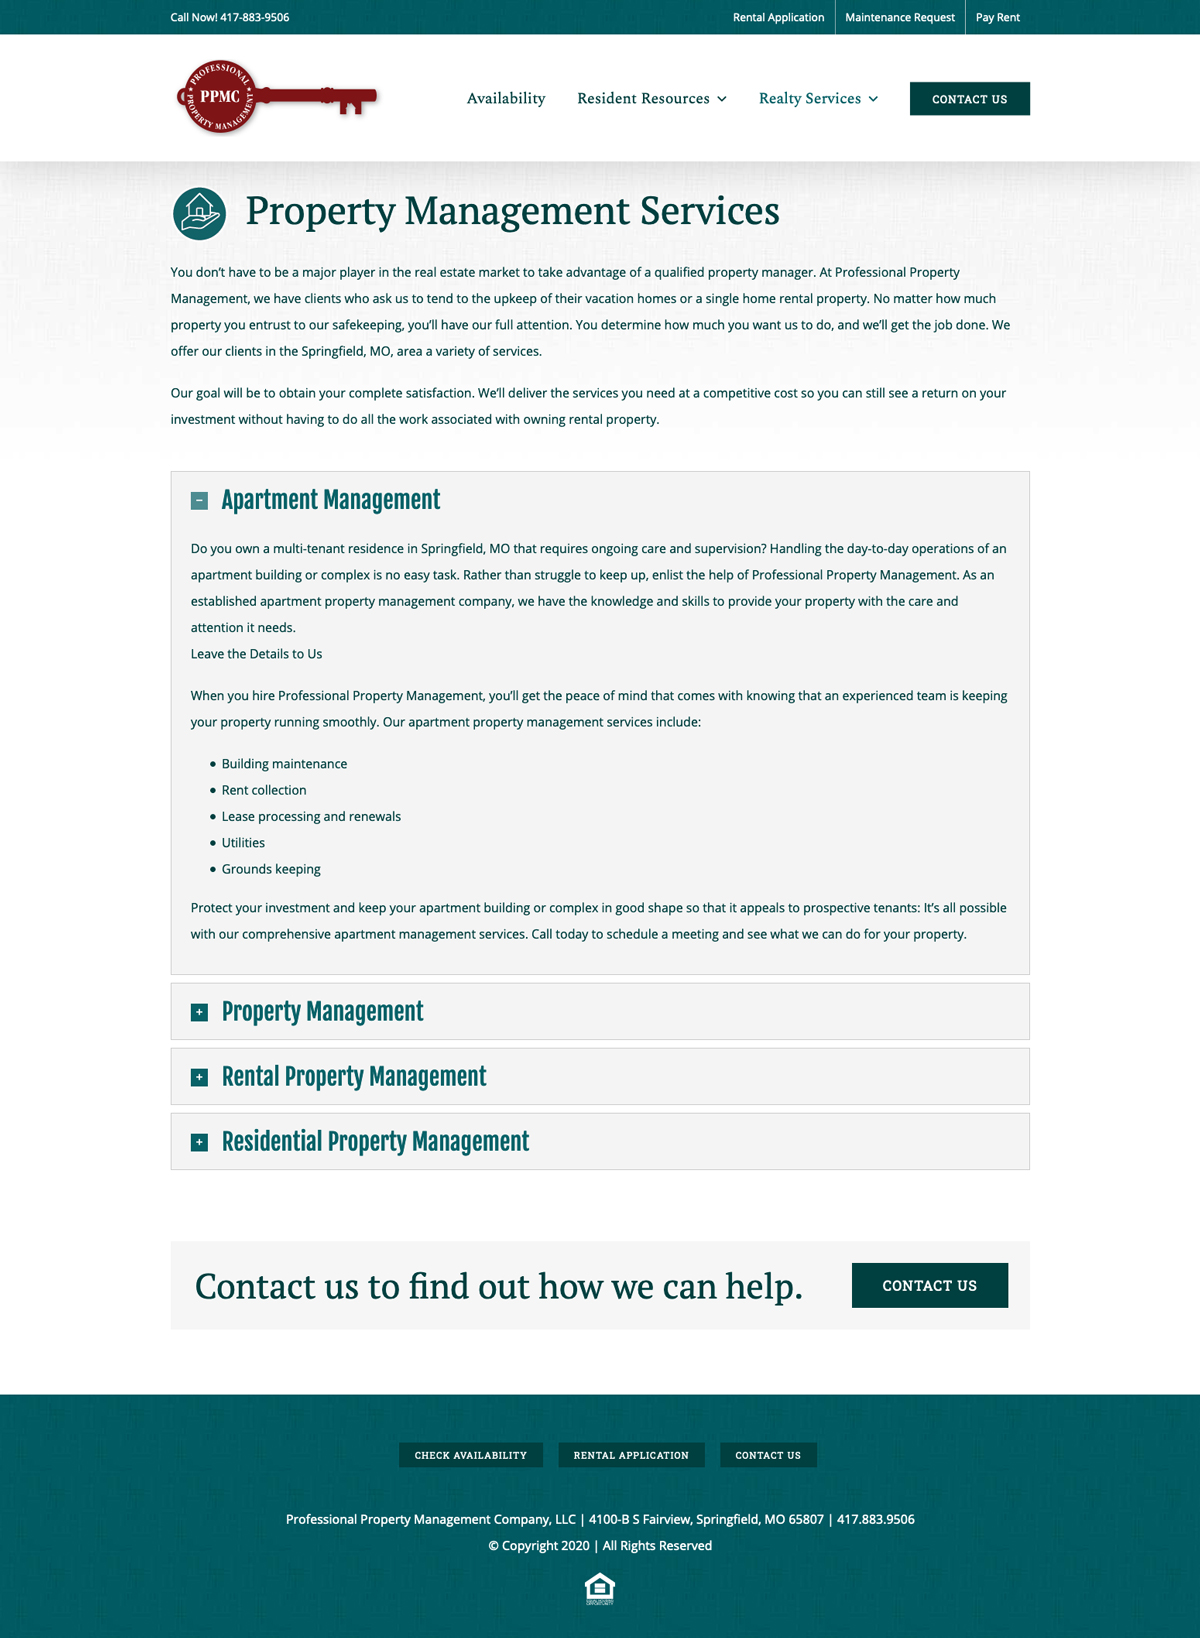 Customer Management System (CMS) Website Design for Professional Property Management Company